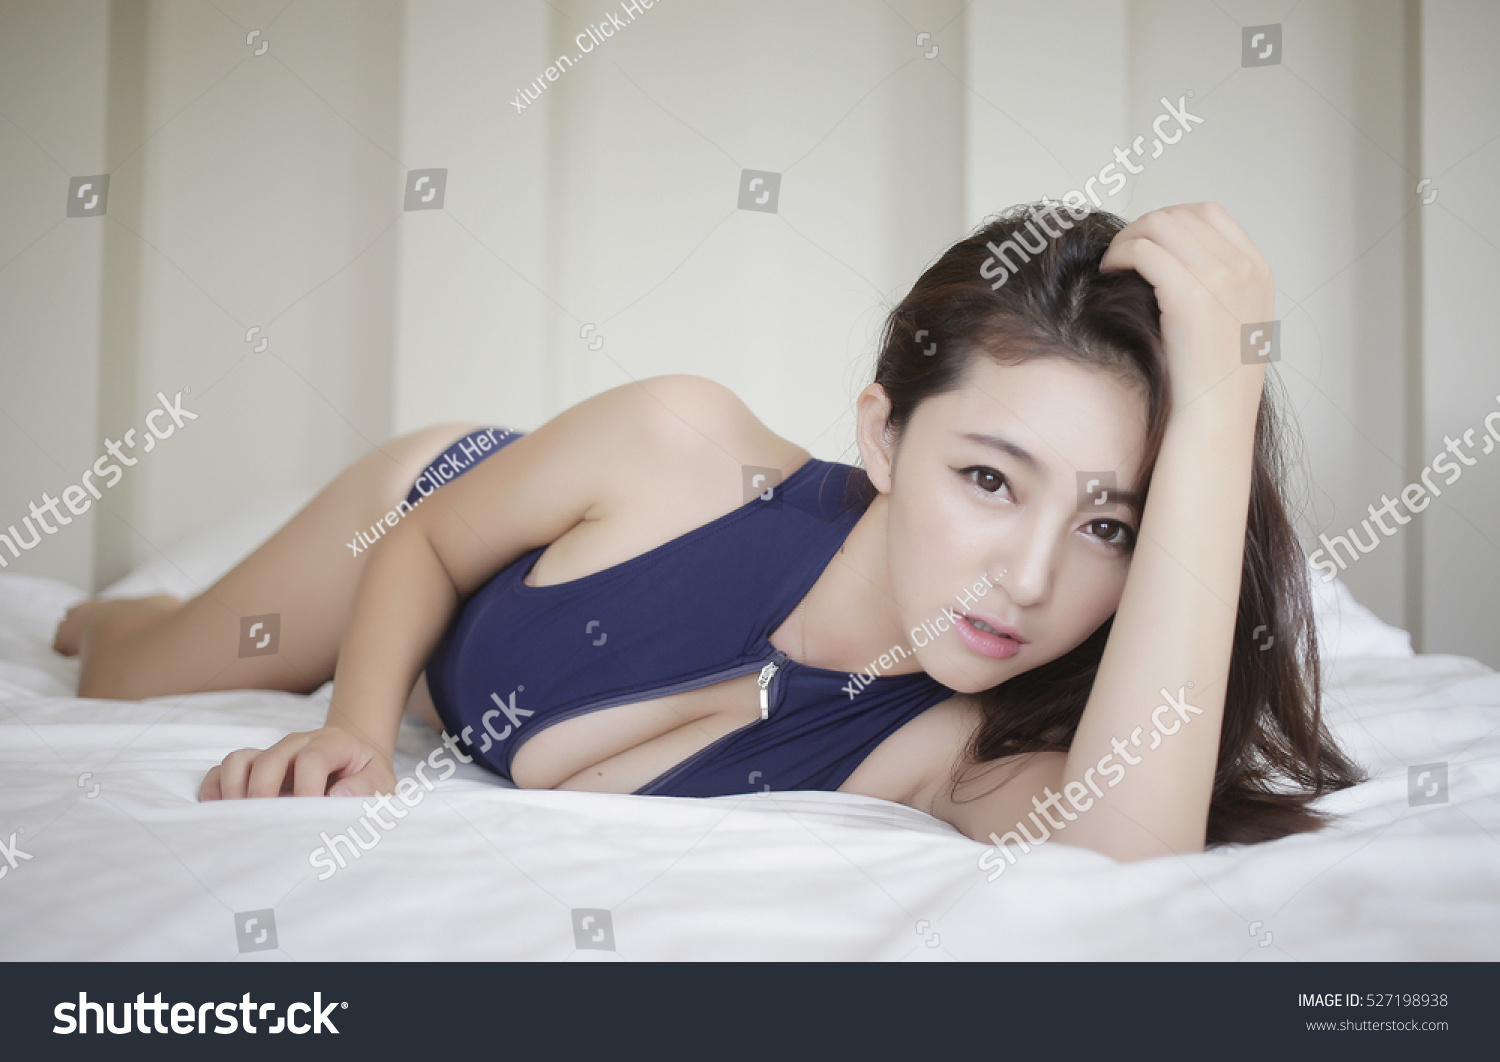 sexy girl and sexy men